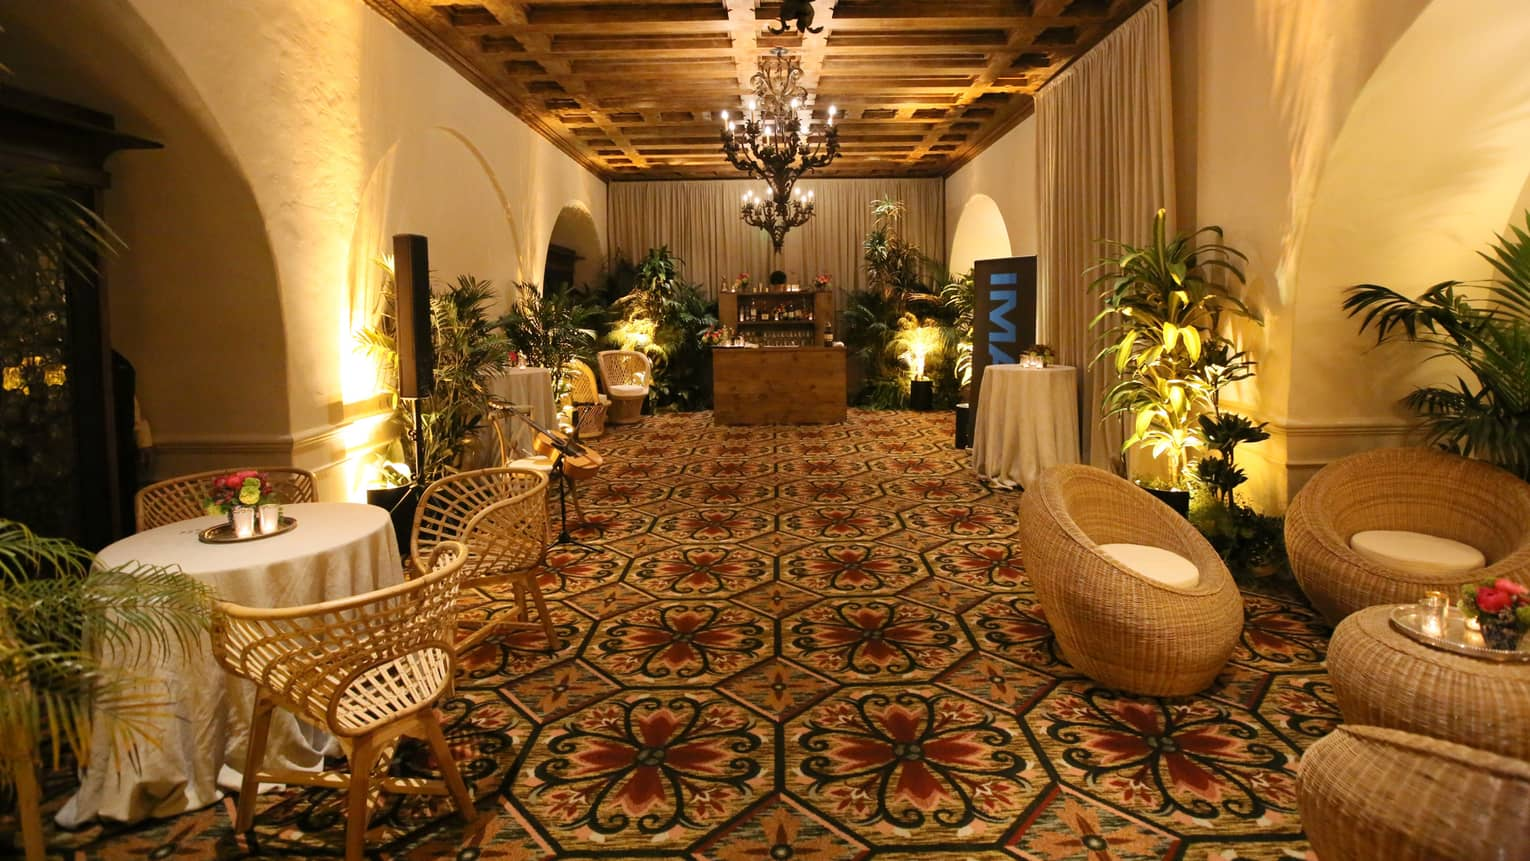 La Salita carpeted event room with wicker lounge furniture, small wood bar